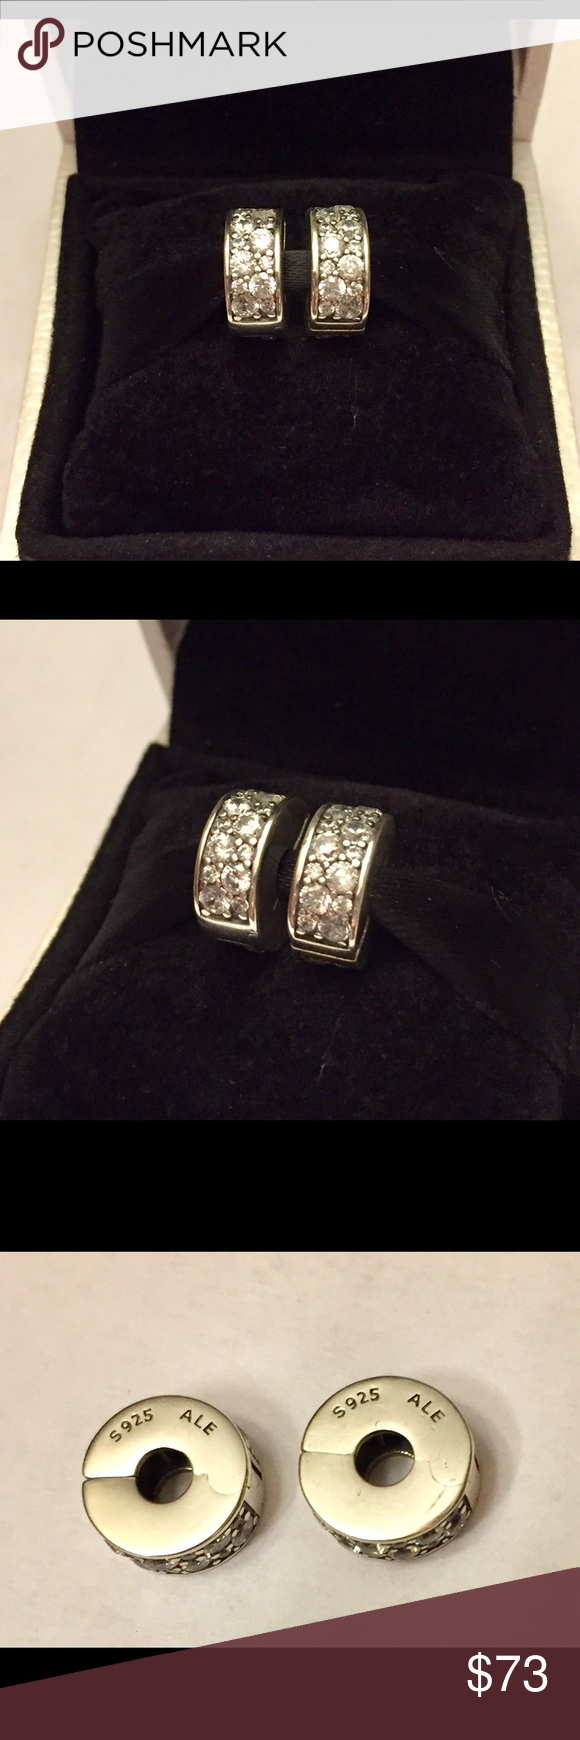 Authentic Pandora Clear Shining Elegance Clips Sterling Silver with Rows of Cz's. Hallmark Stamp S 925 ALE. The Pandora Hinged Box is included. No Trading. Thank you. Pandora Jewelry